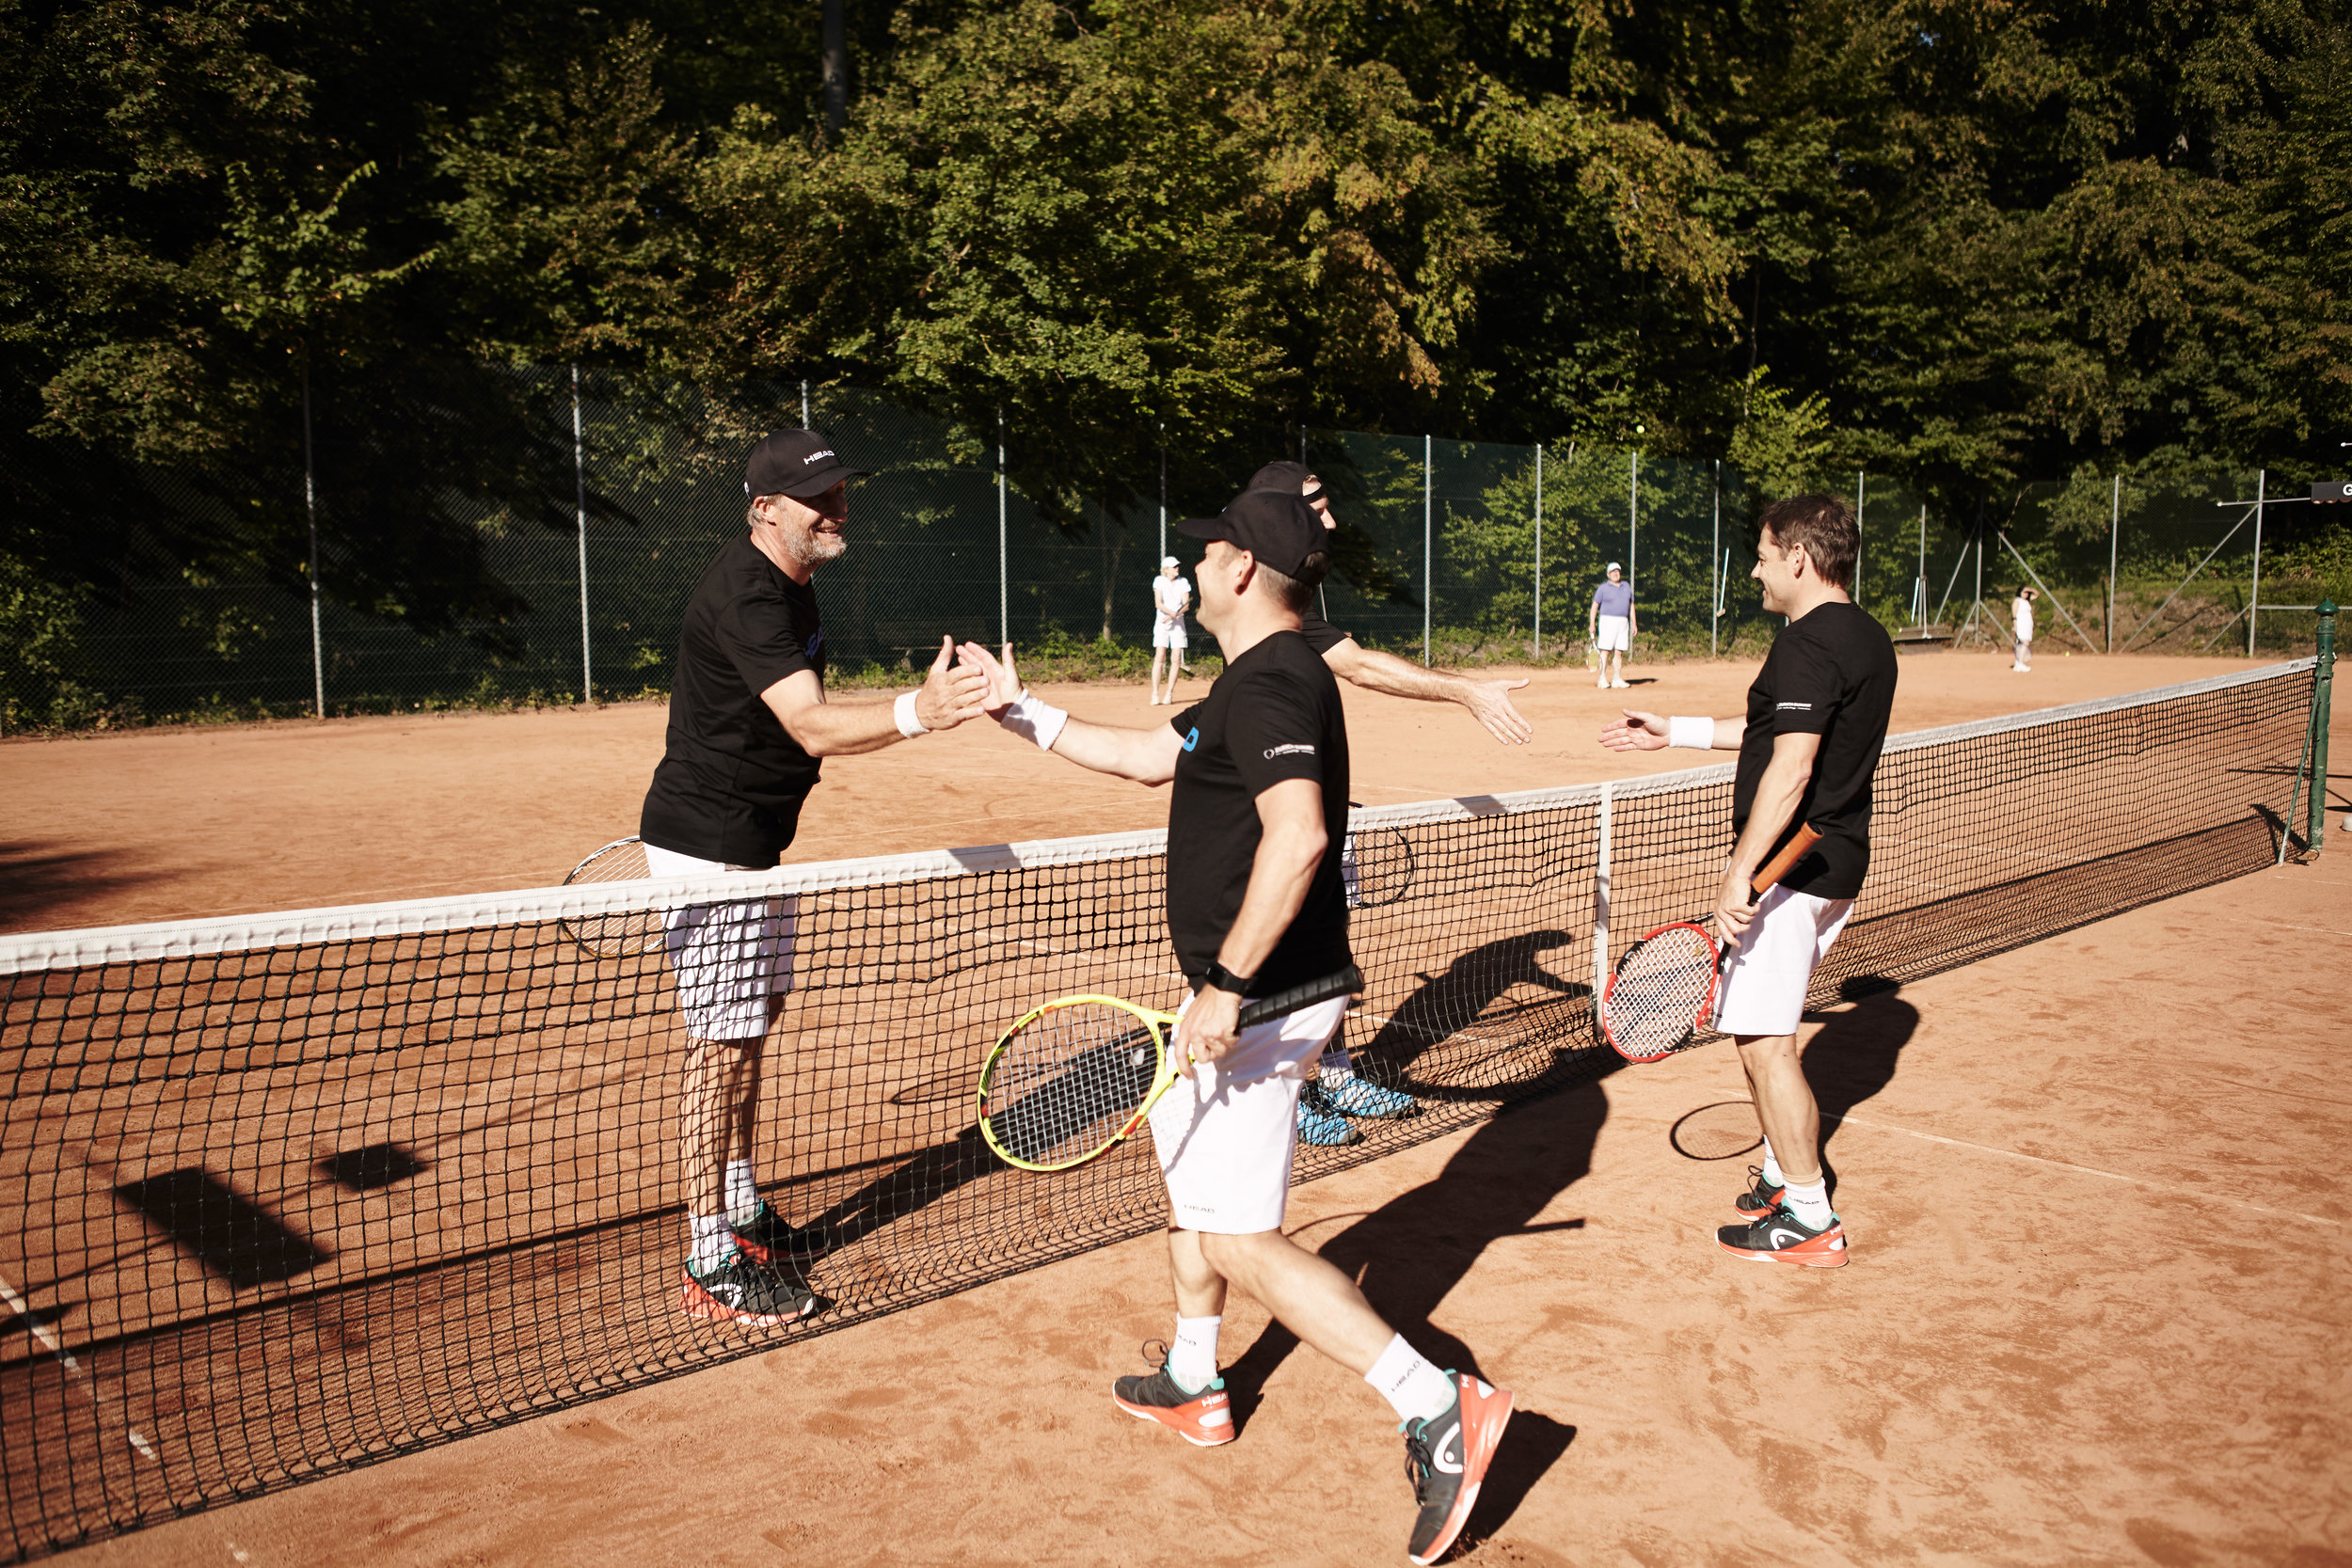 20160925_ZH_SUMMIT_TENNIS_by_FPT_0022.jpg